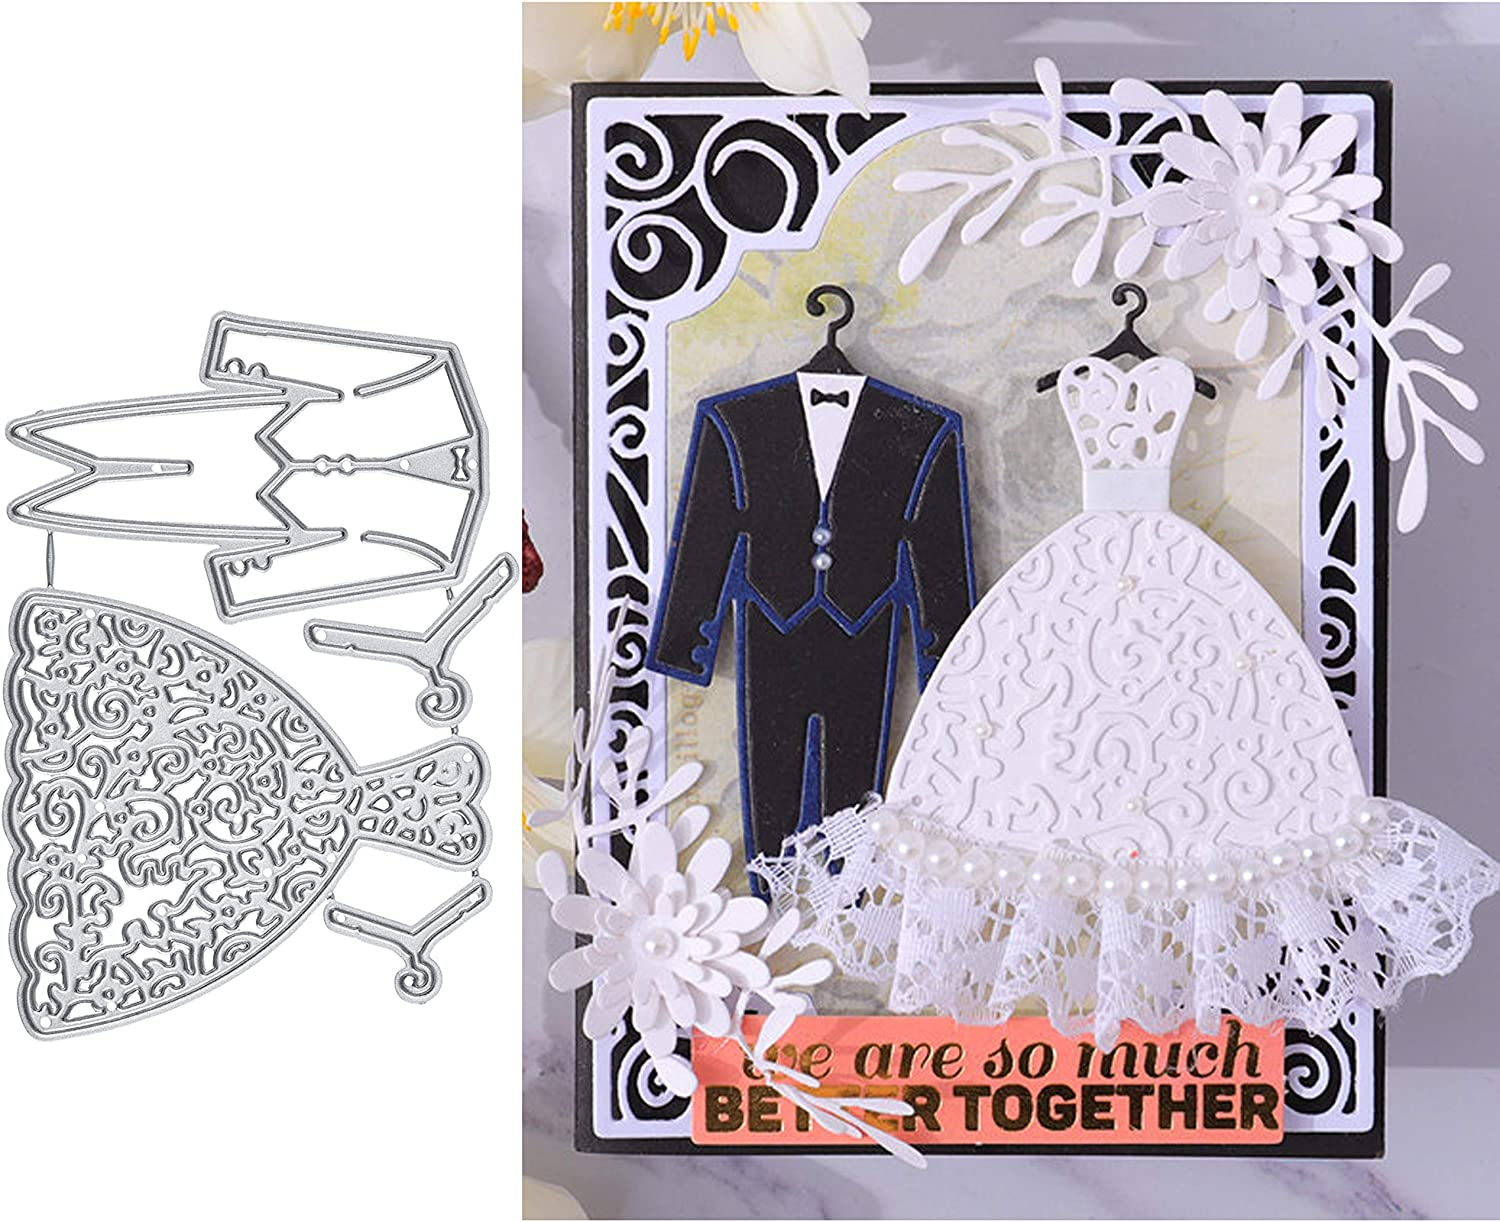 DIY Cutting Dies Stencil DIY Scrapbooking Embossing Paper Card Decor Bride Groom Wedding Shape Mould for Scrapbooking Album Cards Making